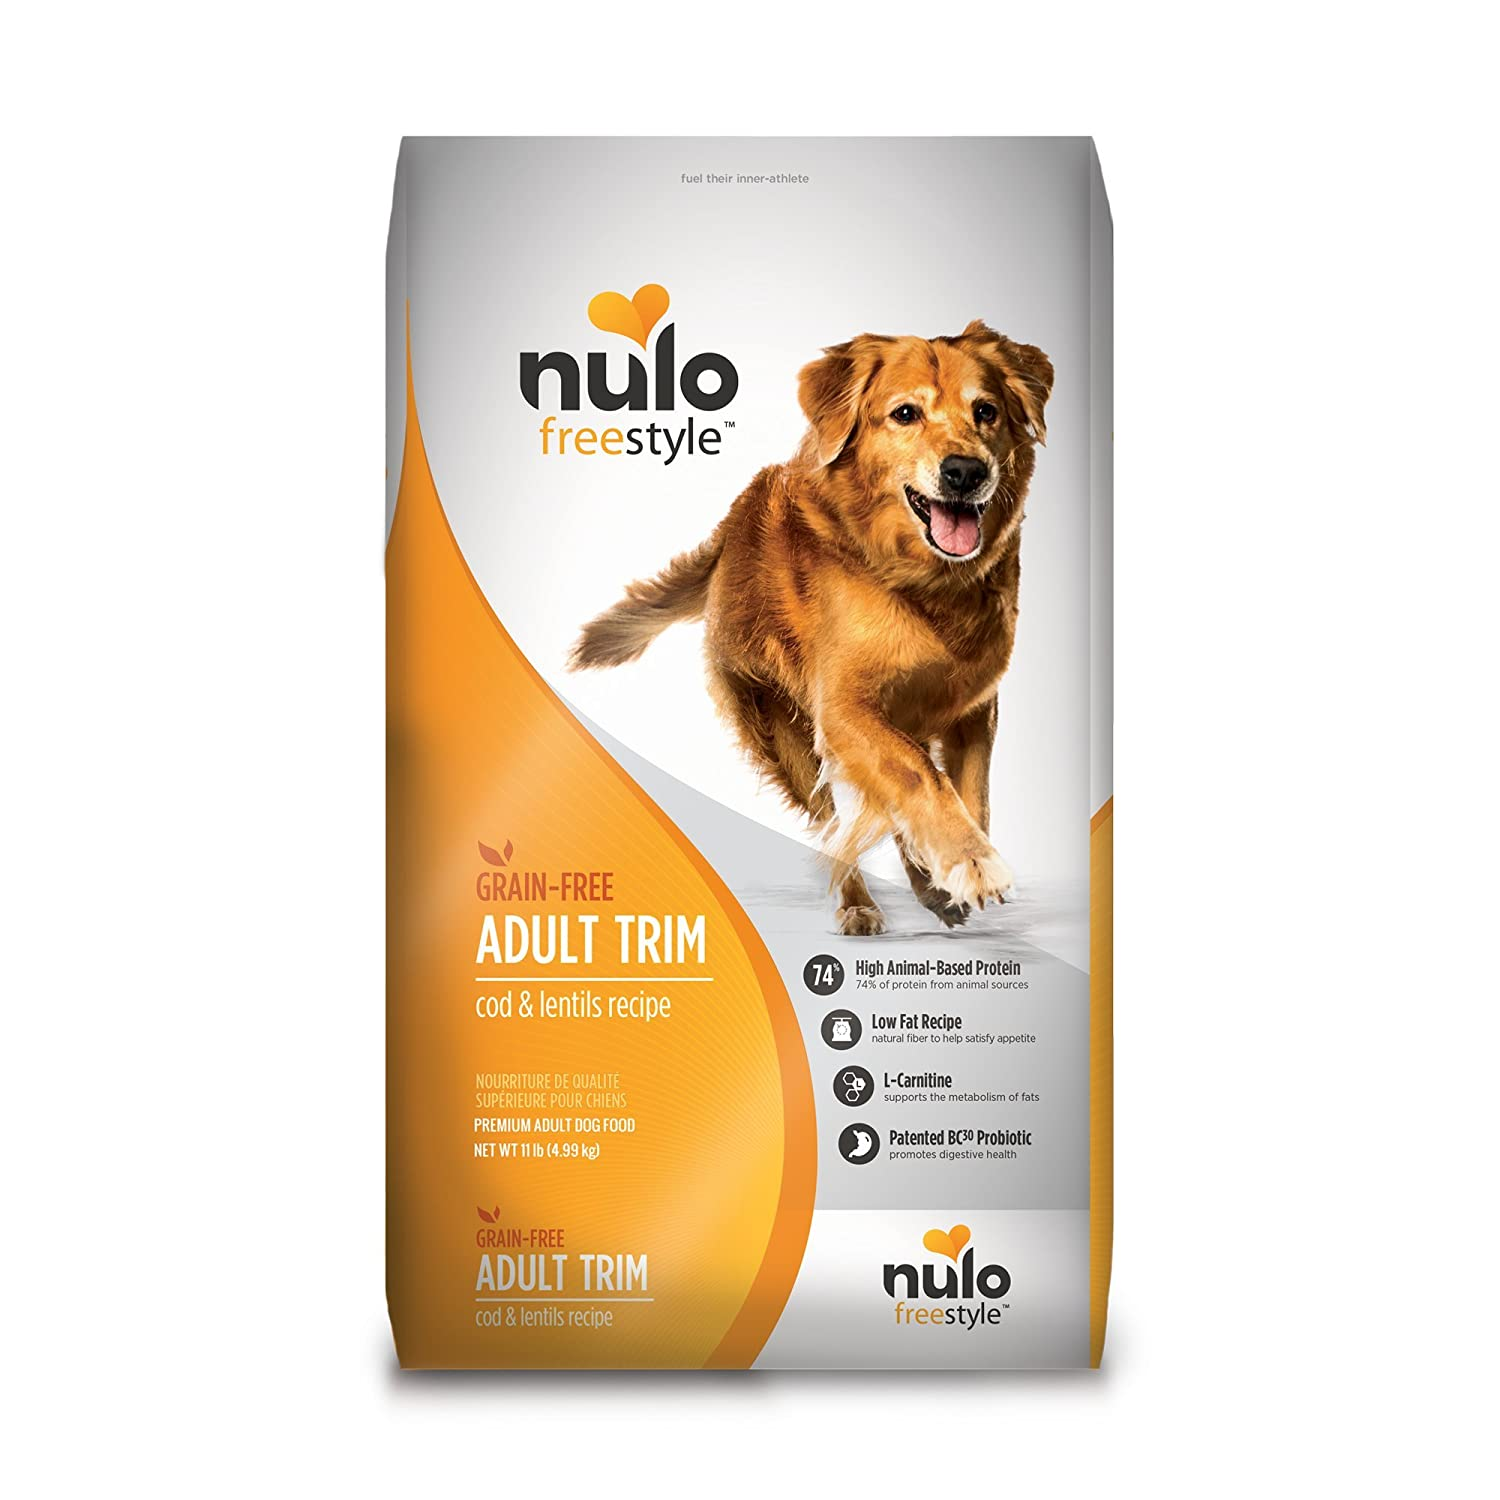 4. Nulo Freestyle Cod & Lentils Recipe Grain-Free Adult Trim Dry Dog Food